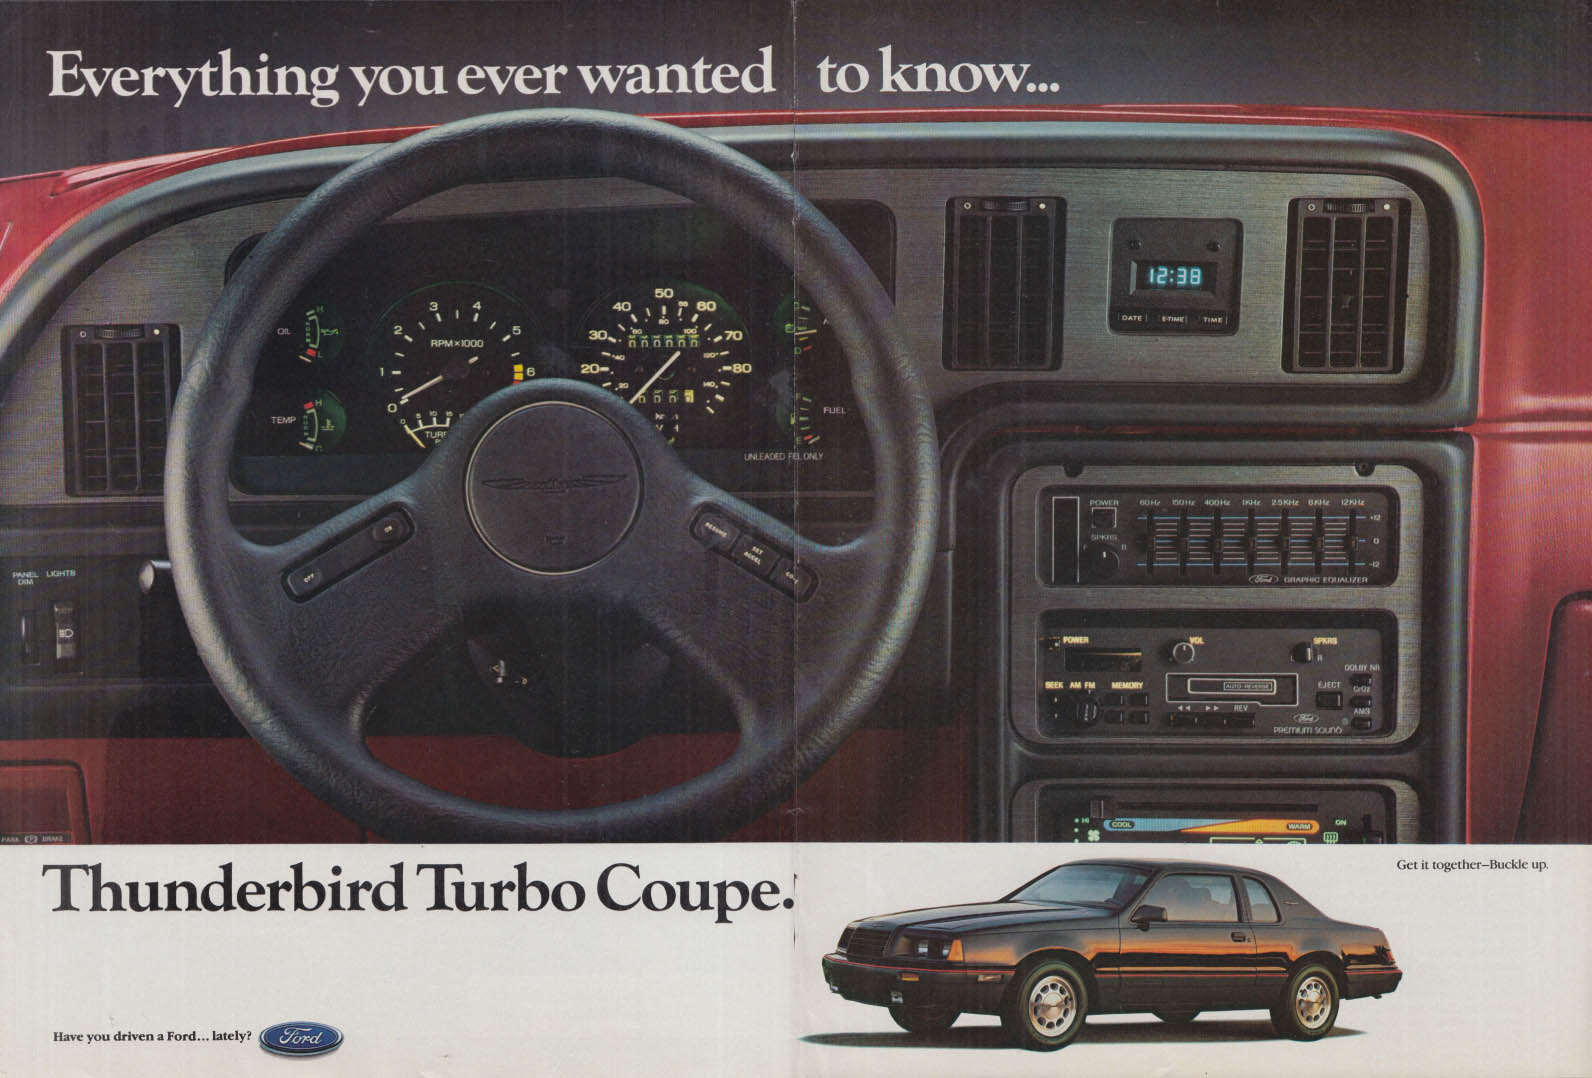 Everything you ever wanted to know Thunderbird Turbo Coupe ad 1985